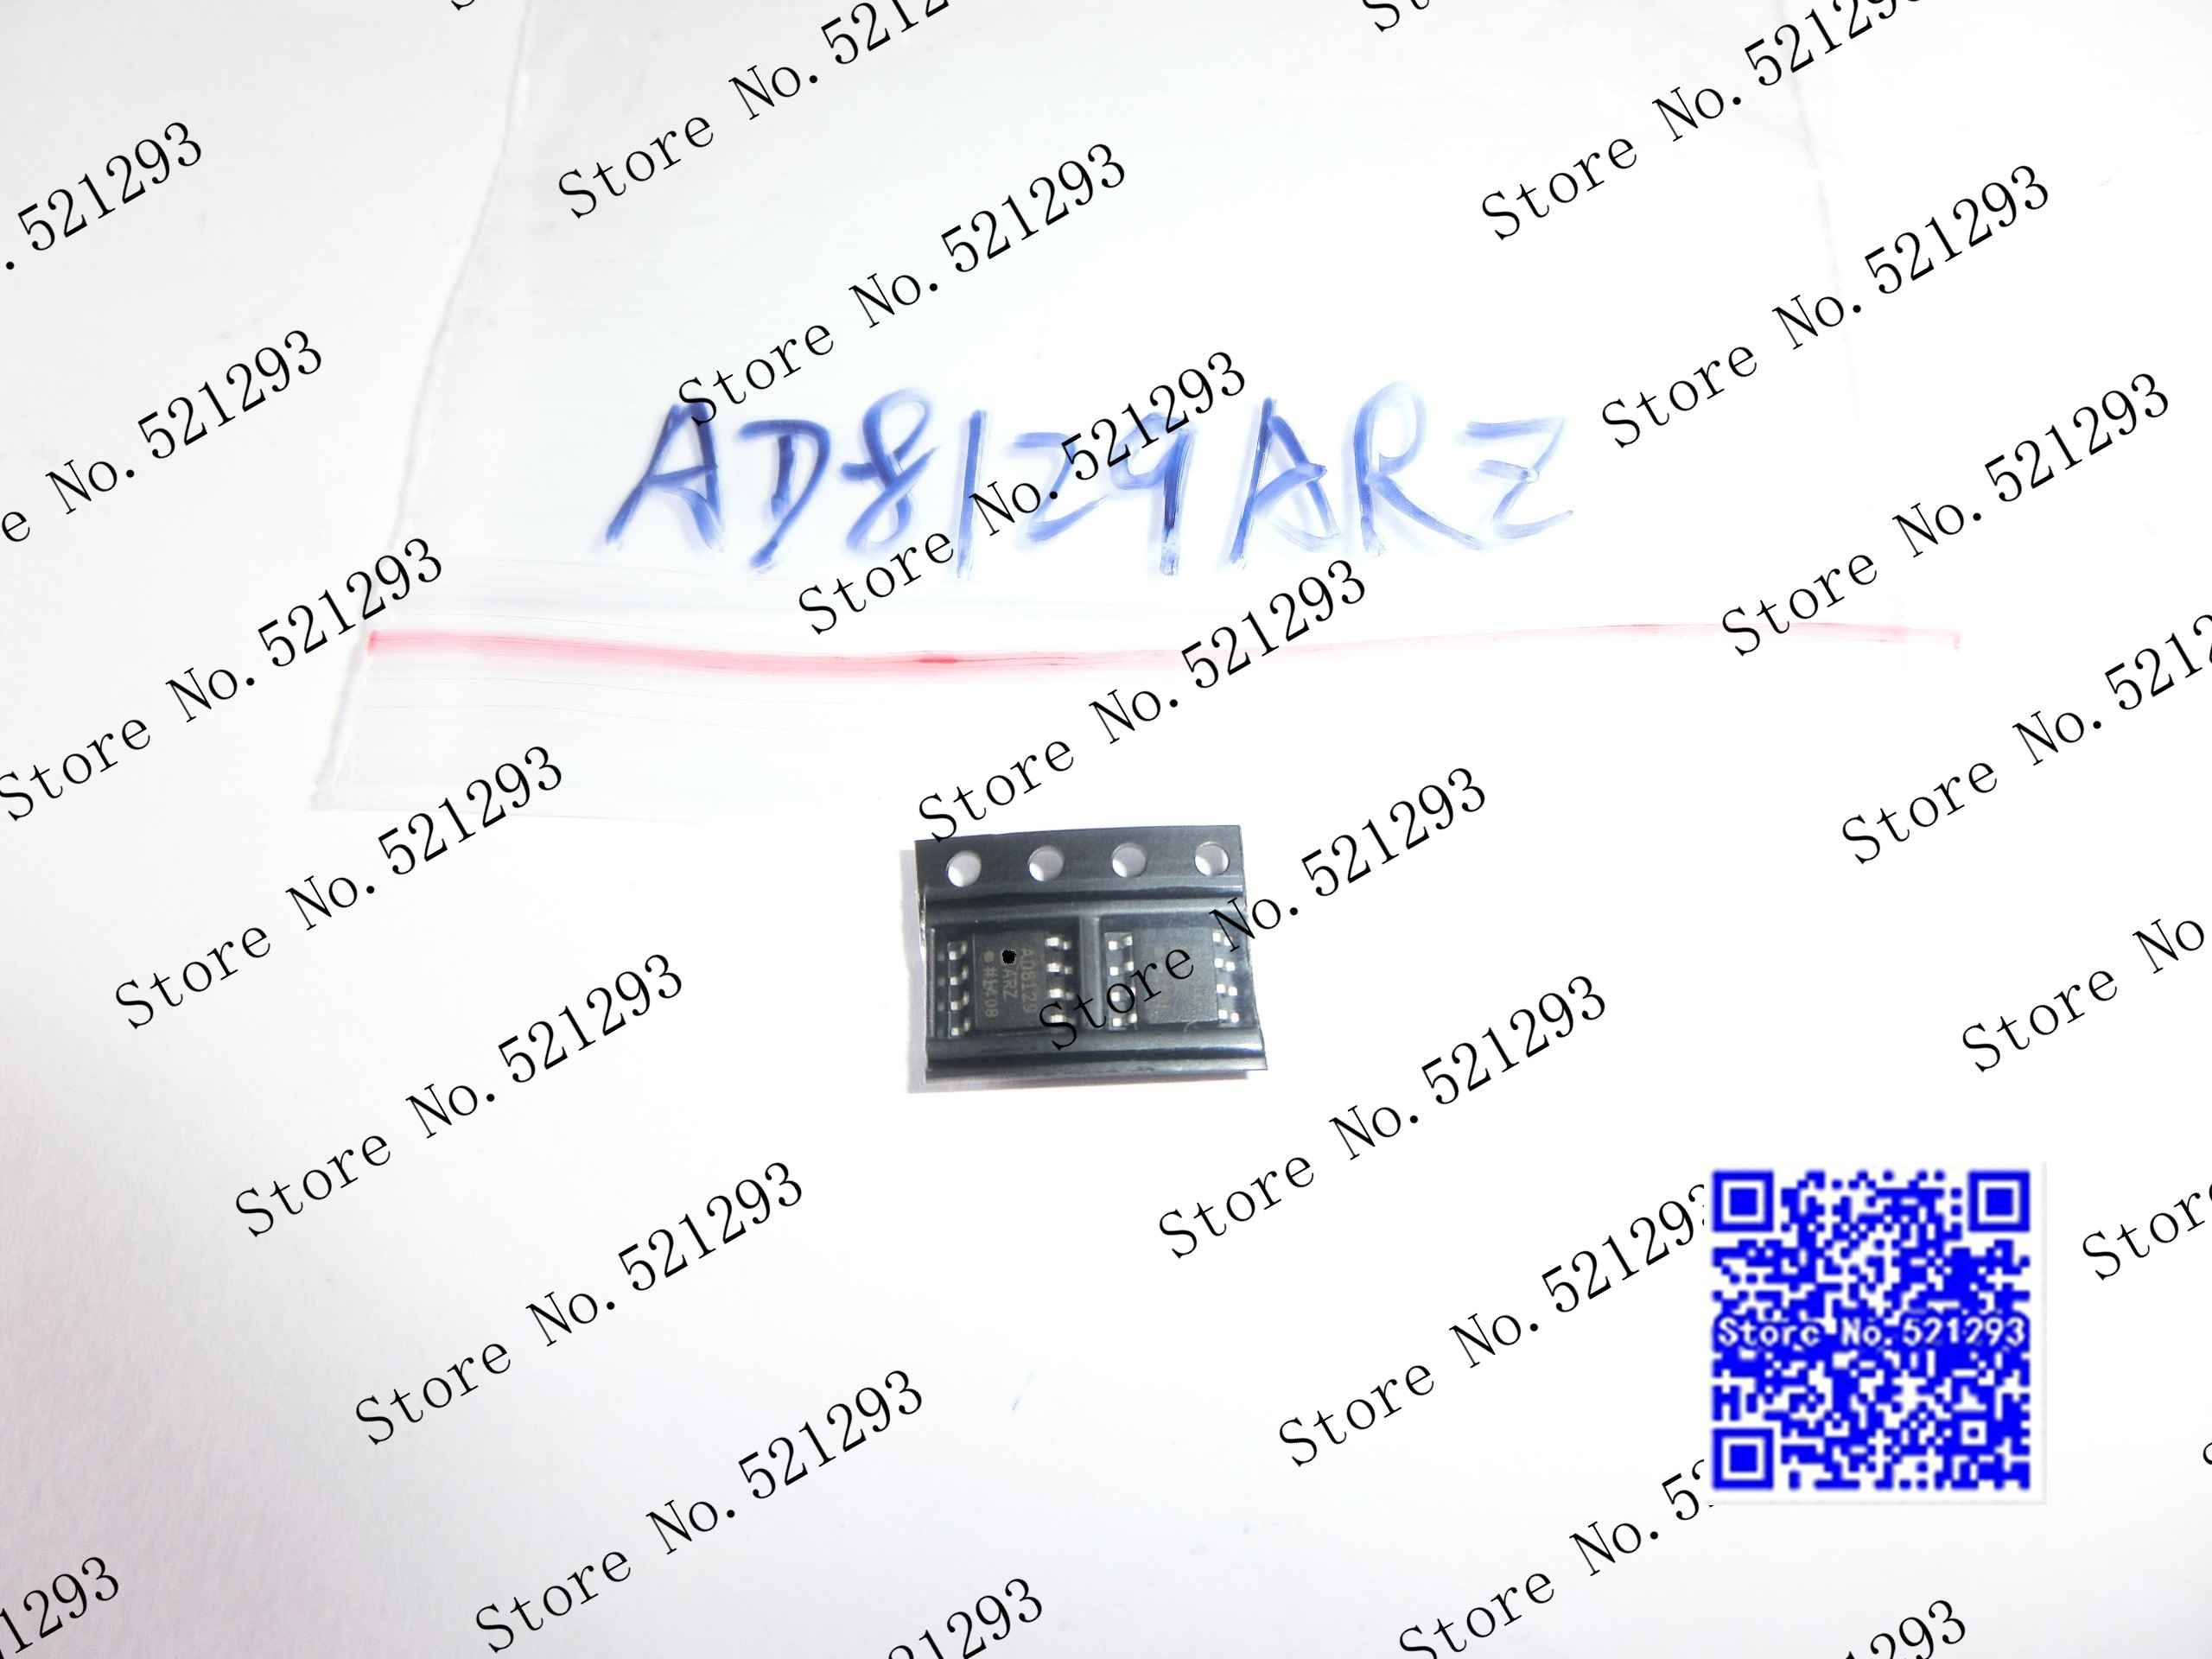 AD8129ARZ-REEL7 Buy Price